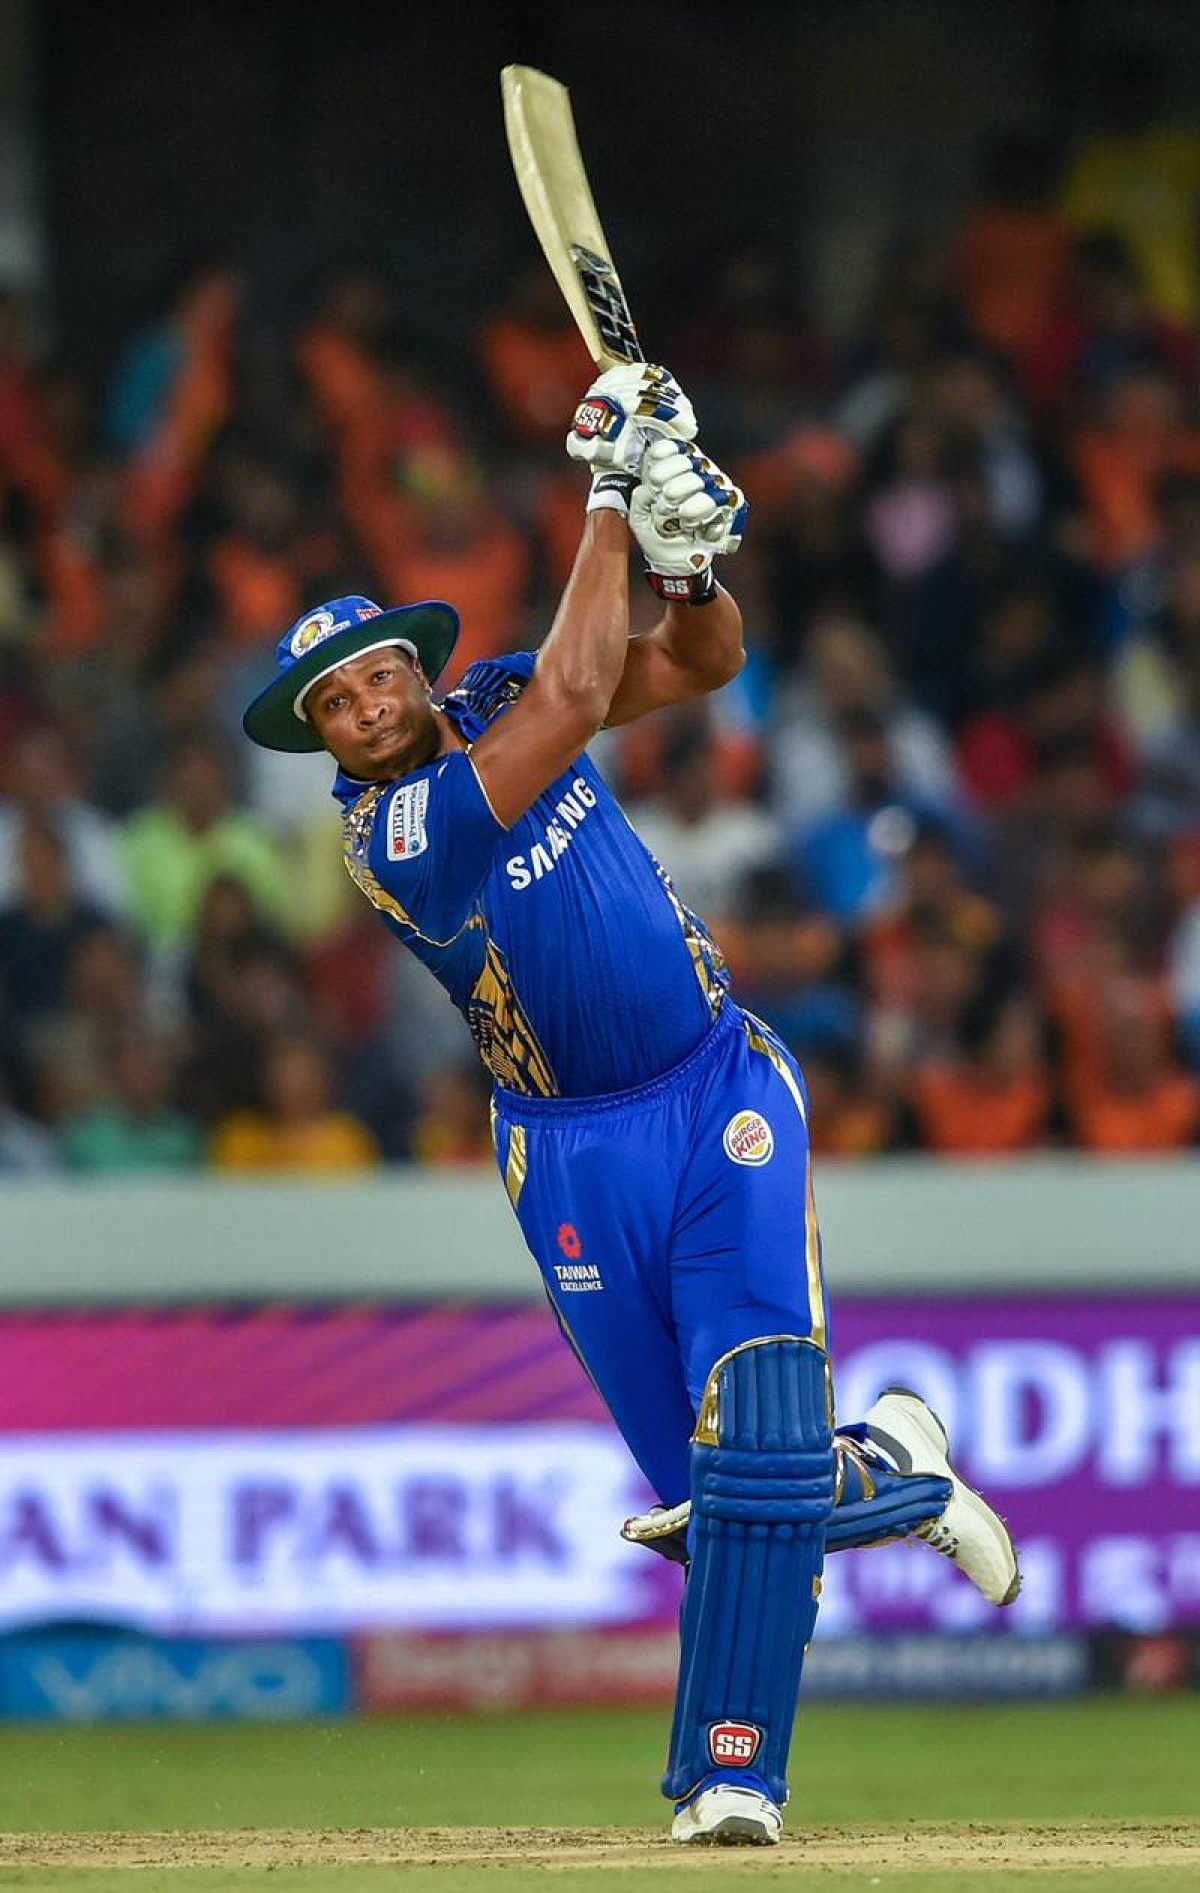 IPL 2019: Pollard fined for showing dissent in IPL final